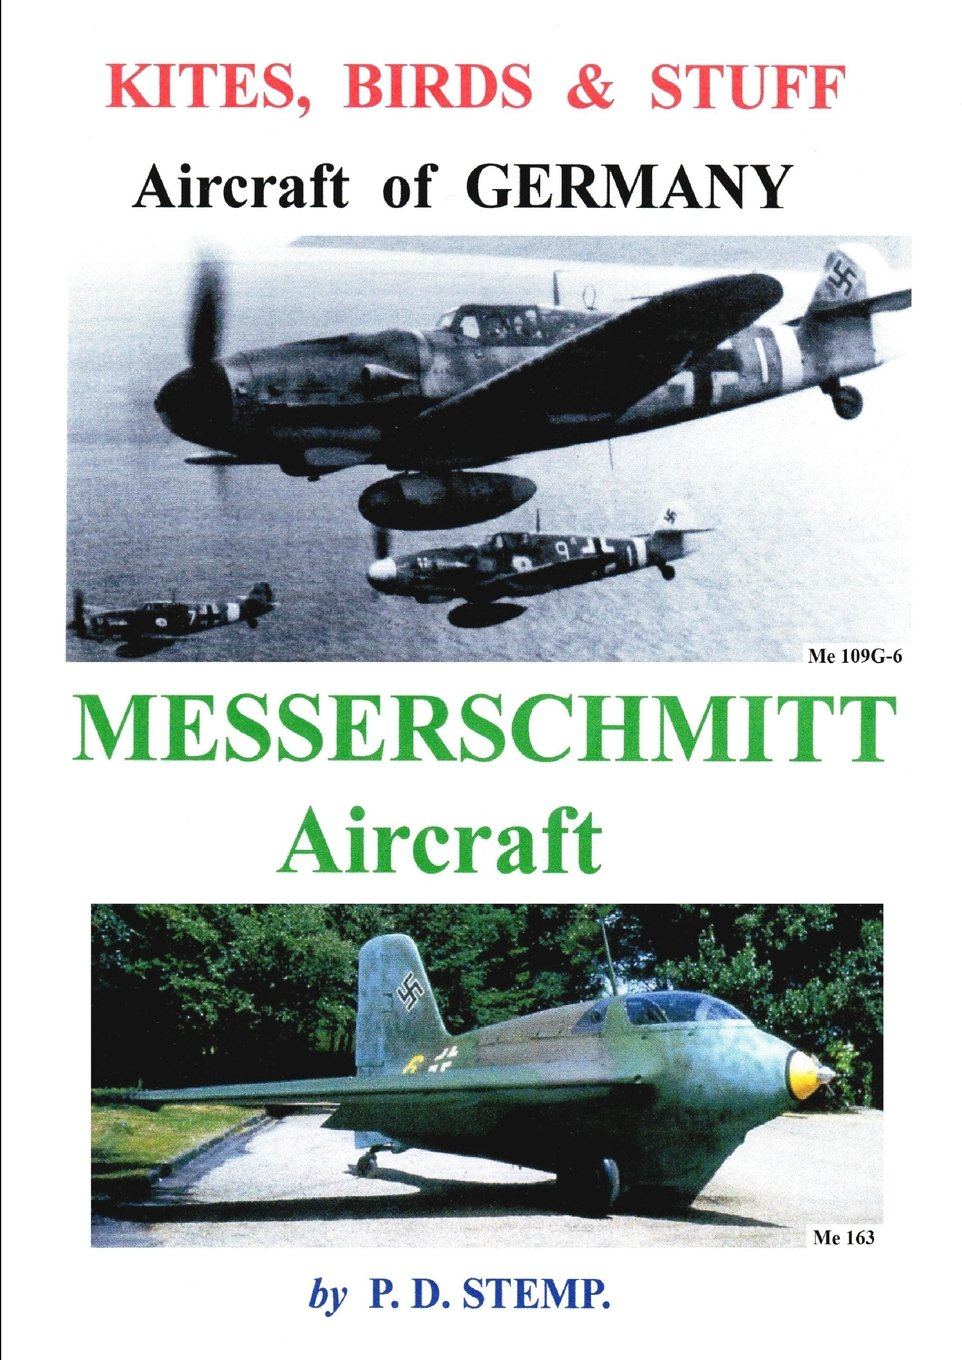 Download Kites, Birds & Stuff - Aircraft of Germany - Messerschmitt Aircraft pdf epub